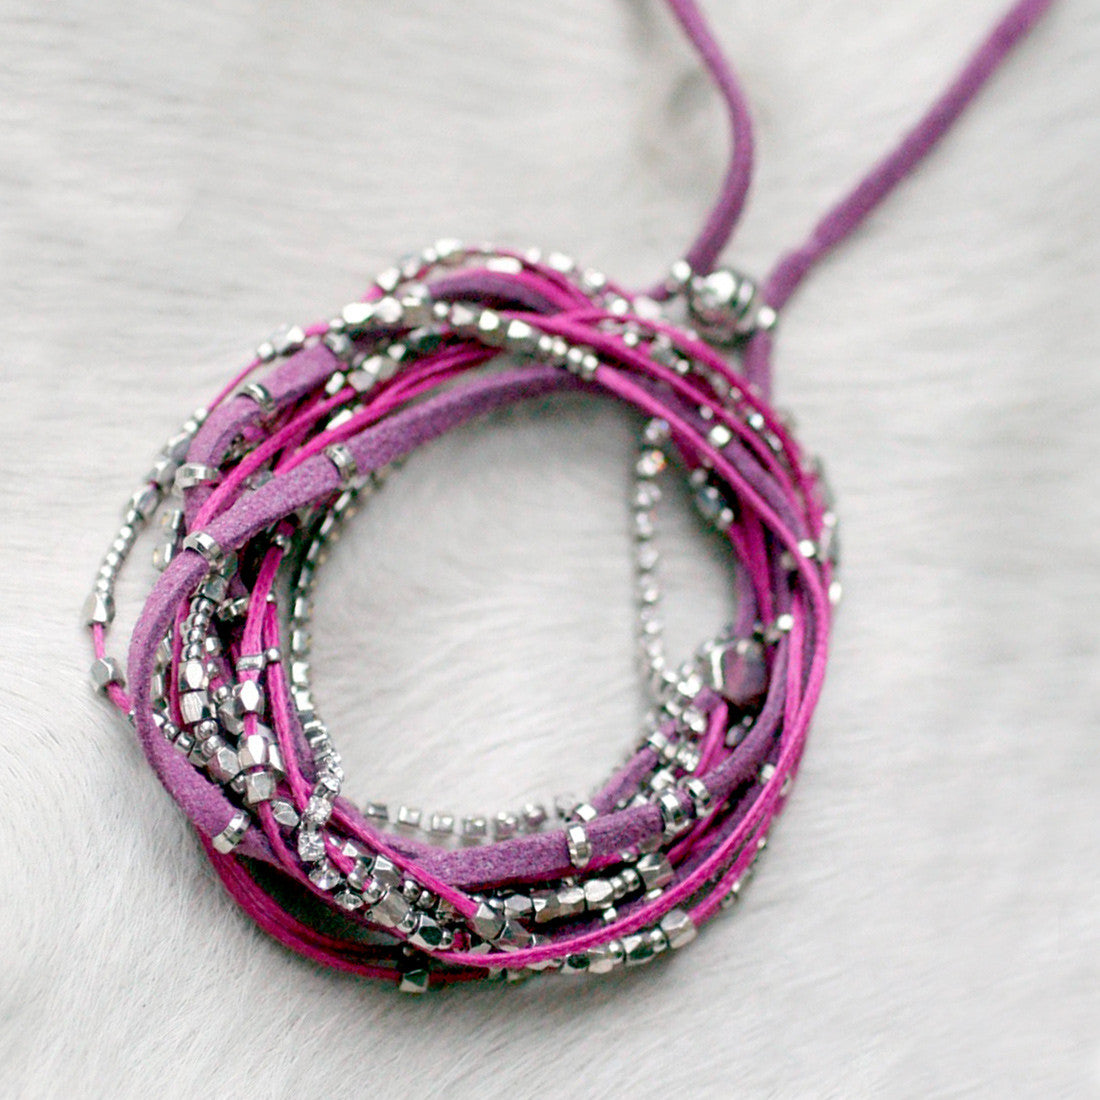 Glistening Strands Double Duty Wrap Bracelet/Necklace with Easy Magnetic Adjustable Clasp - Violet